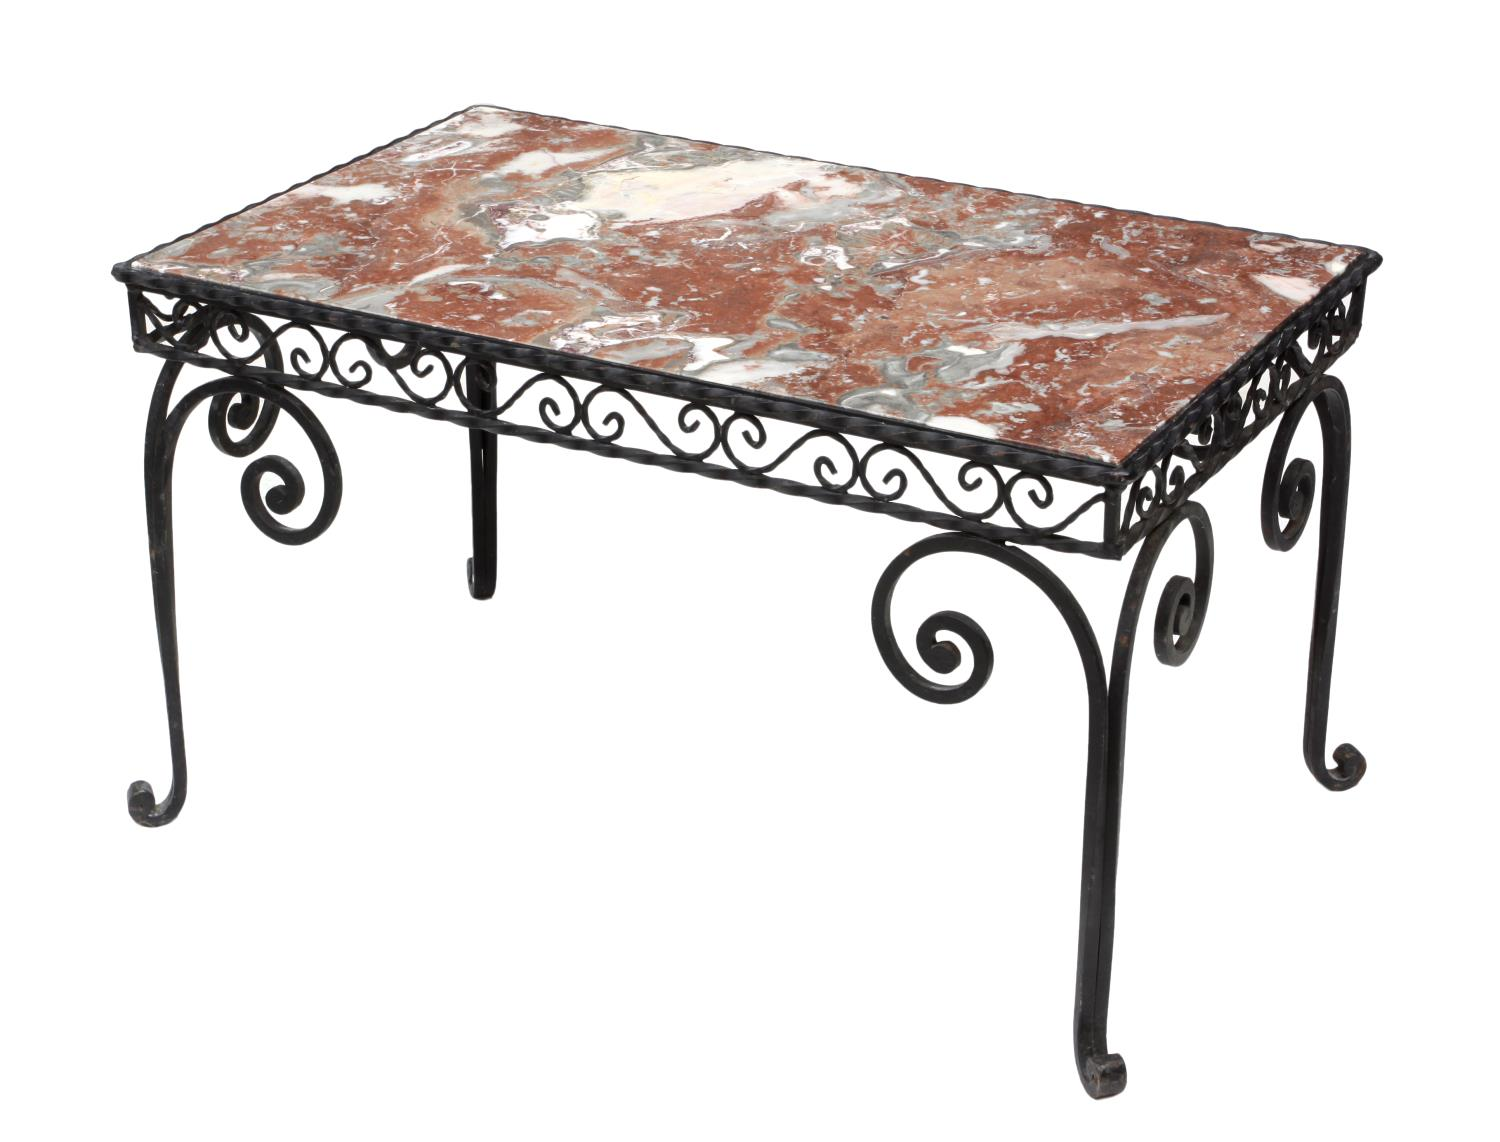 FRENCH WROUGHT IRON MARBLE TOP COFFEE TABLE